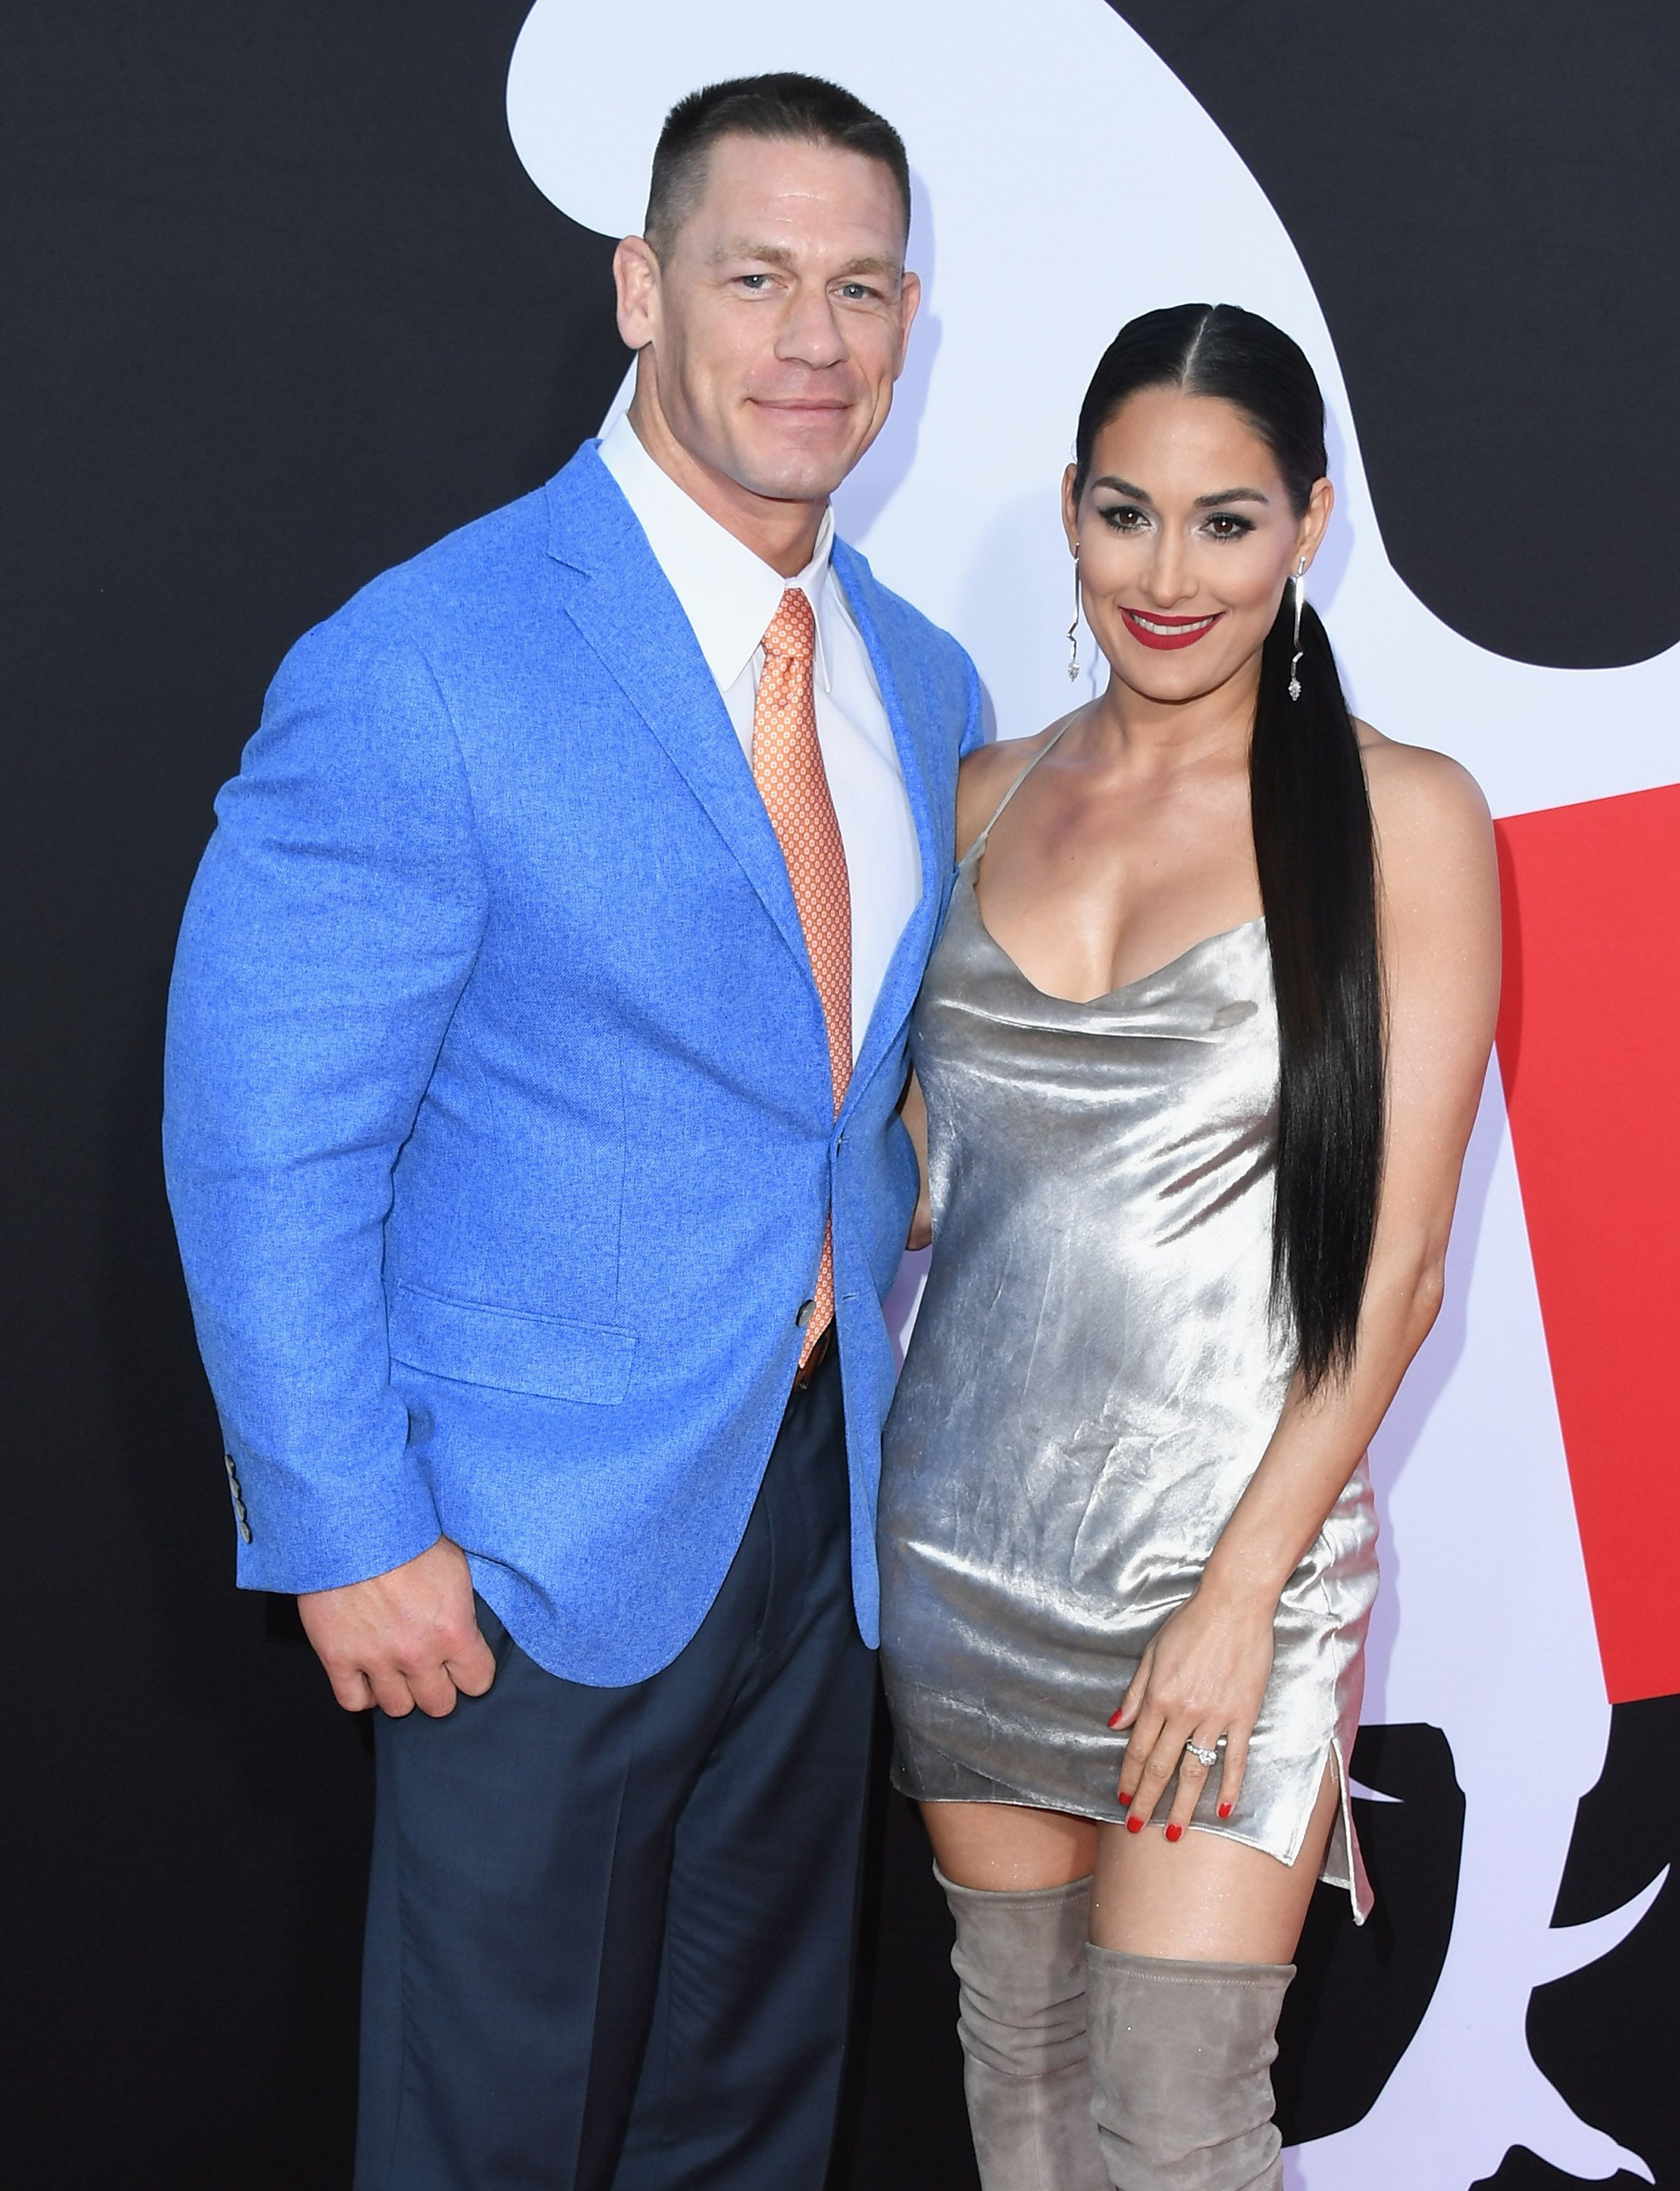 John Cena S Feelings About Ex Gf Nikki Bella Becoming A Mom John cena and shay shariatzadeh, who had been dating since 2019, were married in florida this week. ex gf nikki bella becoming a mom